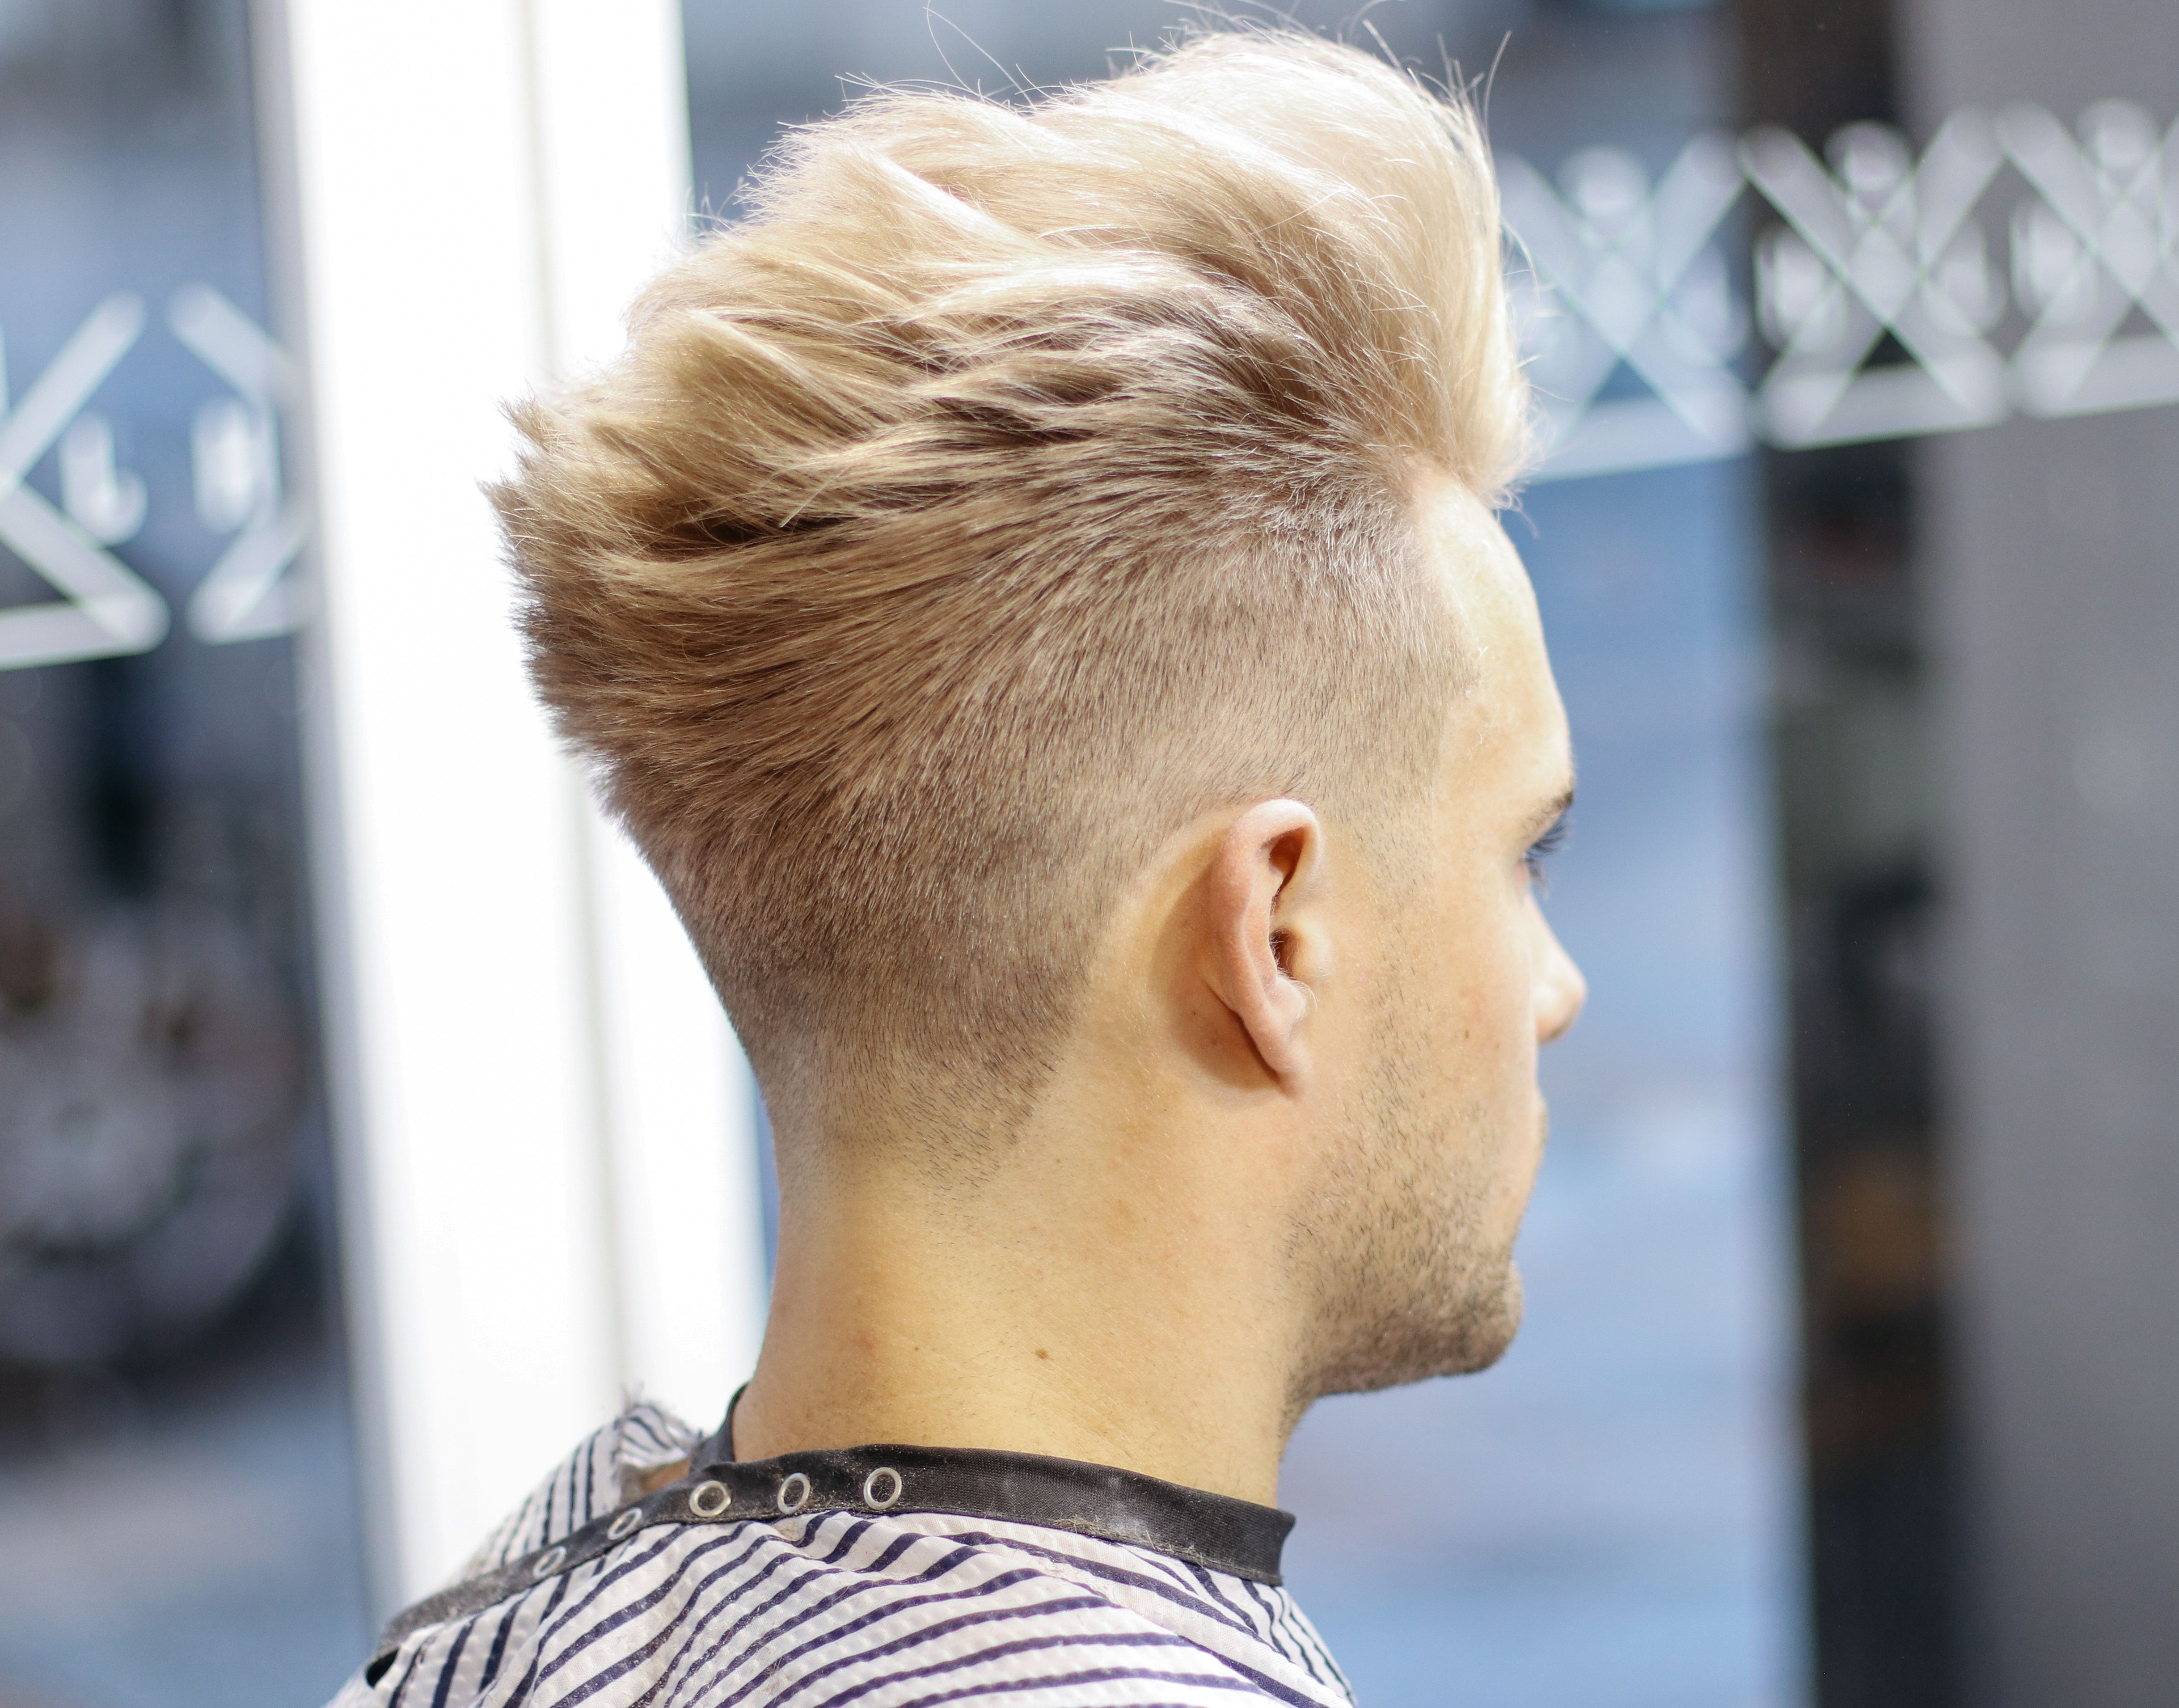 Men S Hair 2018 Platinum Blonde Pompadour X Clean Fade Model Louisarmstrong7 Barber M13ky Men Blonde Hair Cool Hairstyles Tape Up Haircut